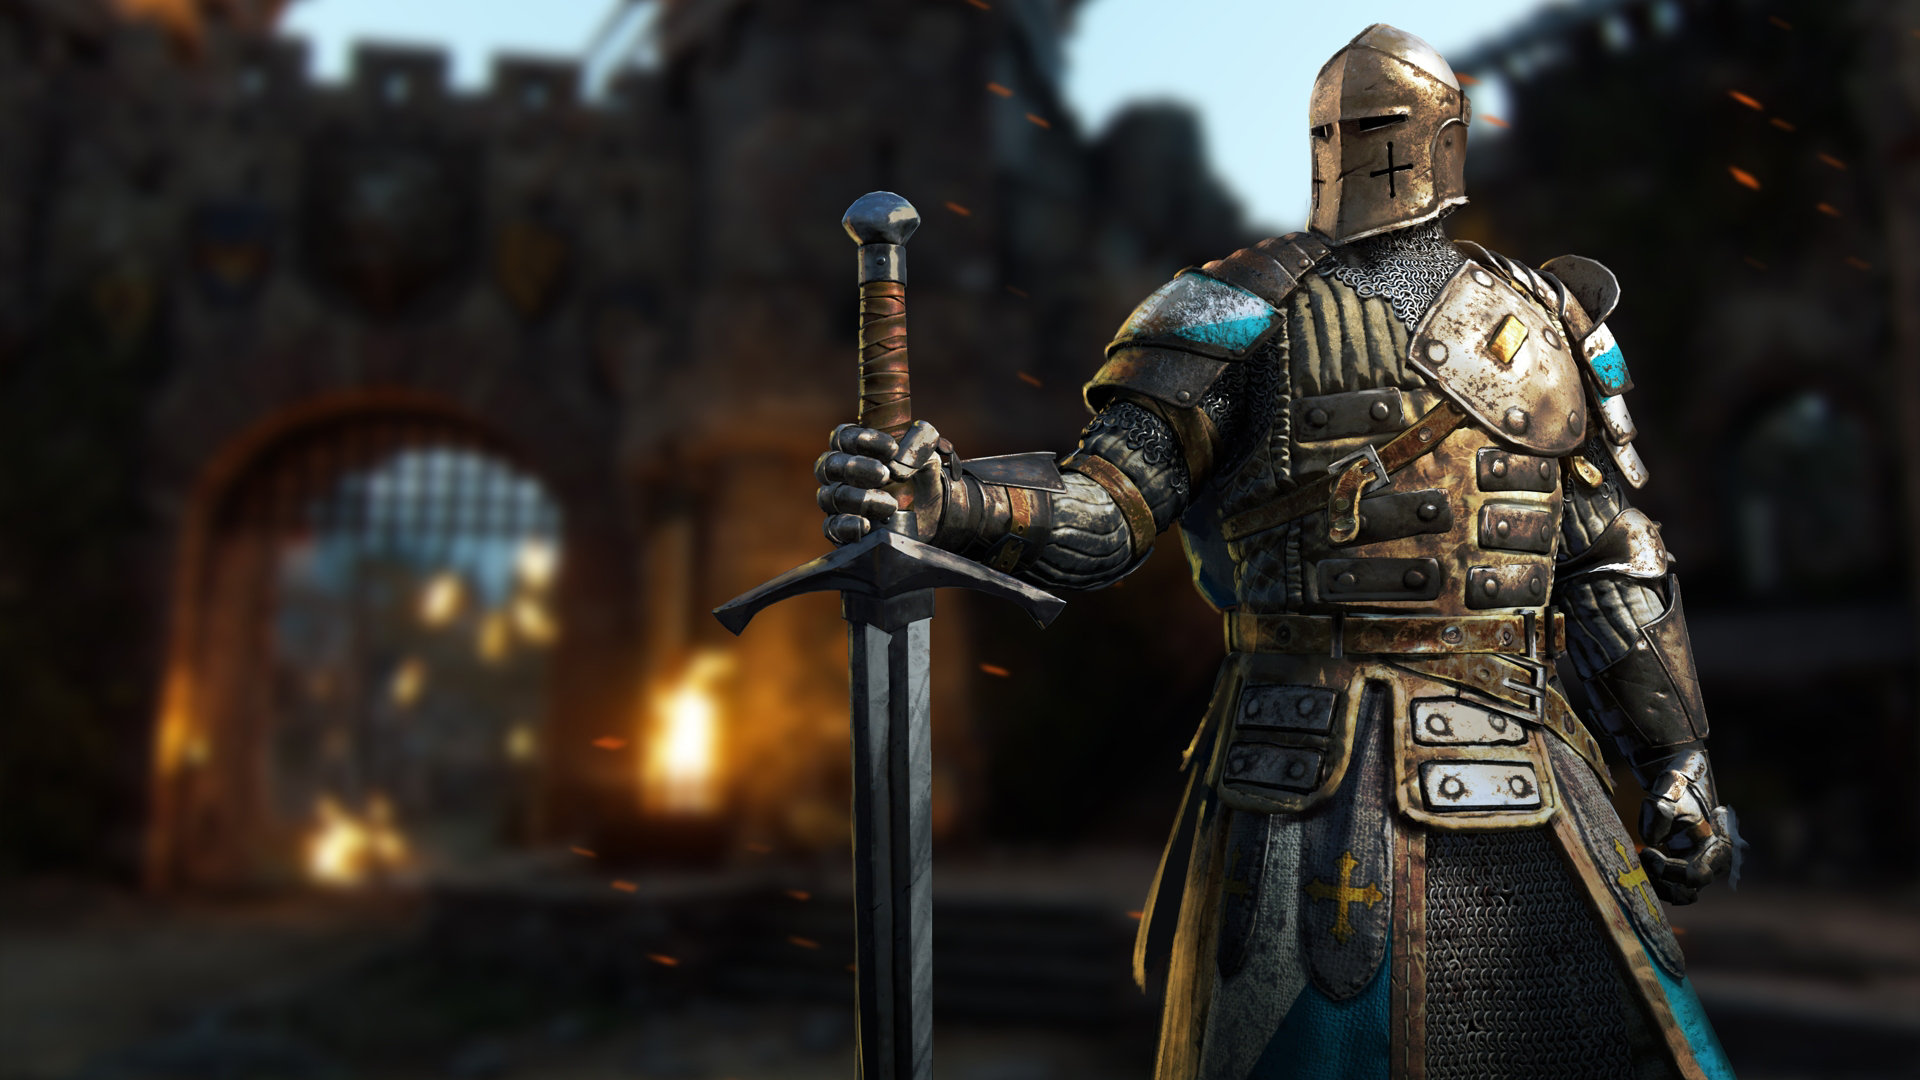 Amazing For Honor Pictures & Backgrounds